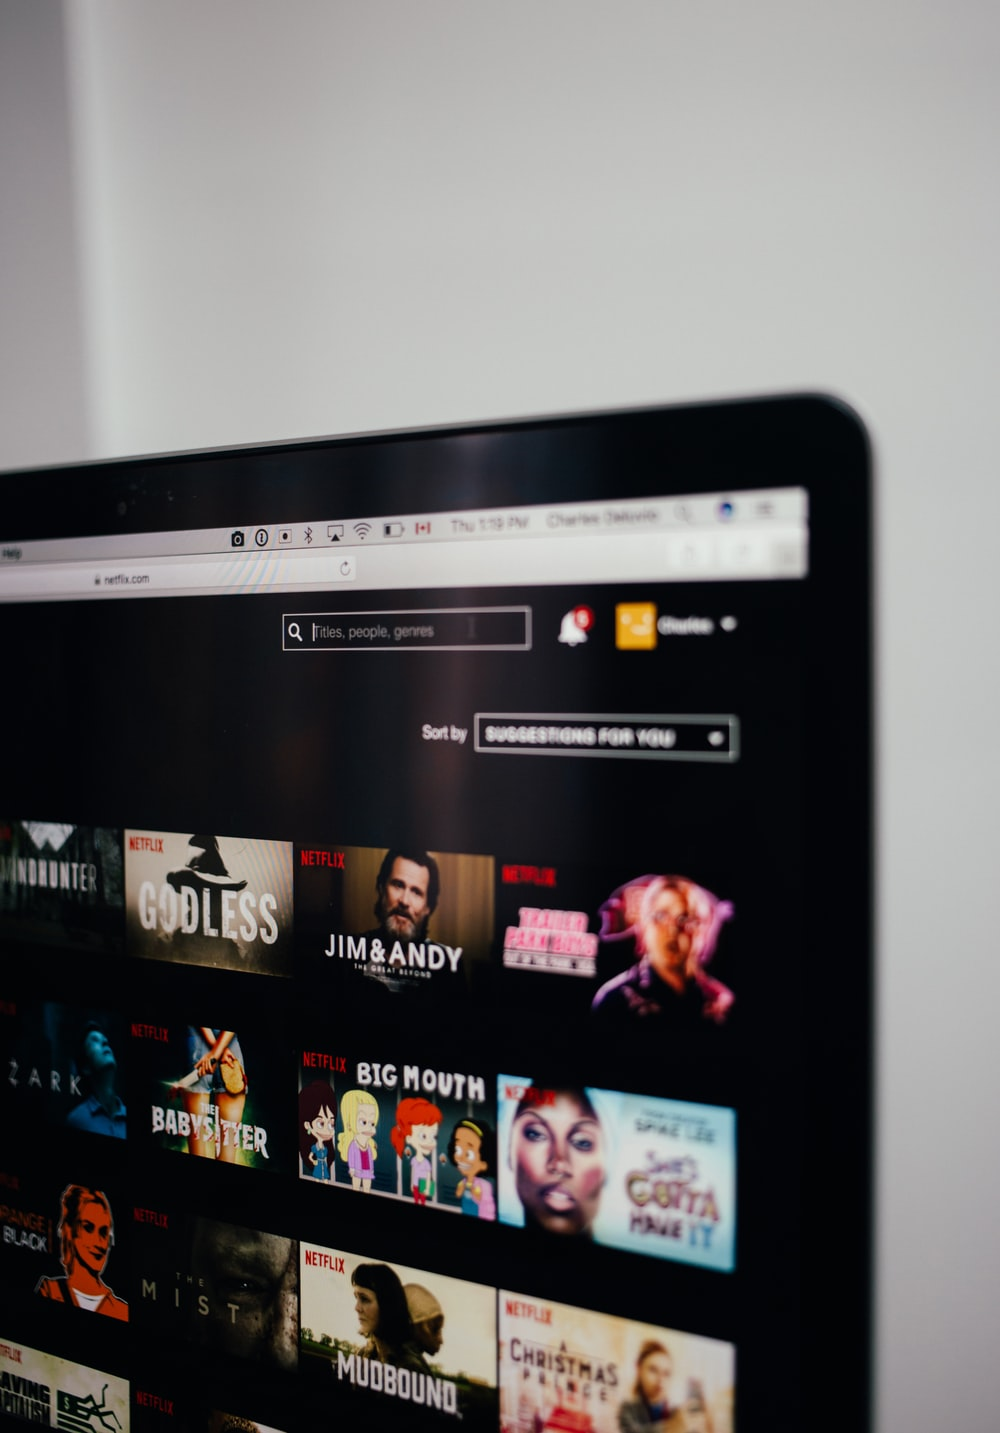 computer monitor showing Netflix selection screen